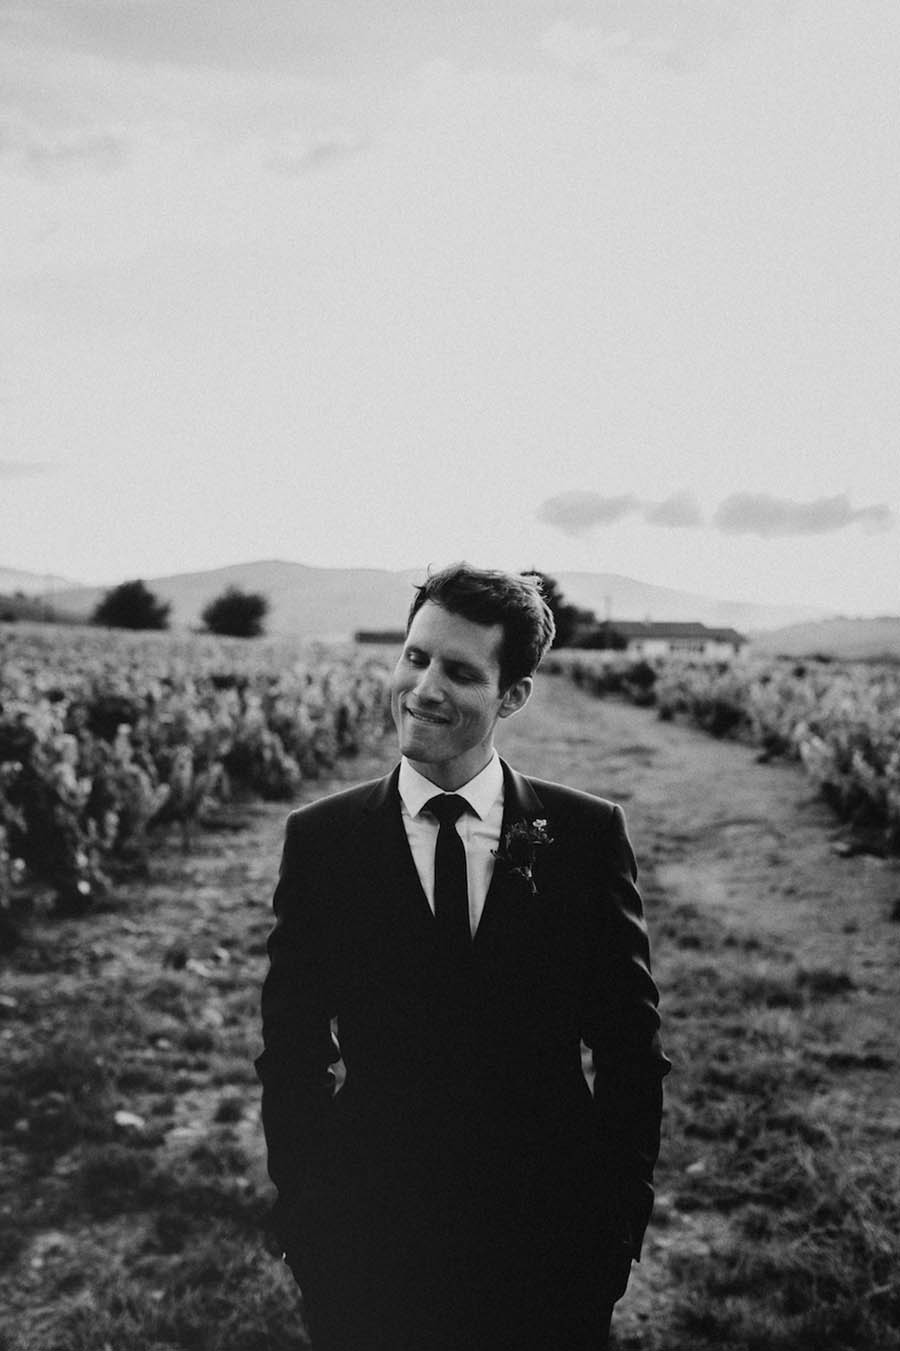 You Made My Day Photography - Baptiste Hauville - Photographe Mariage Bordeaux - Pays Basque-22